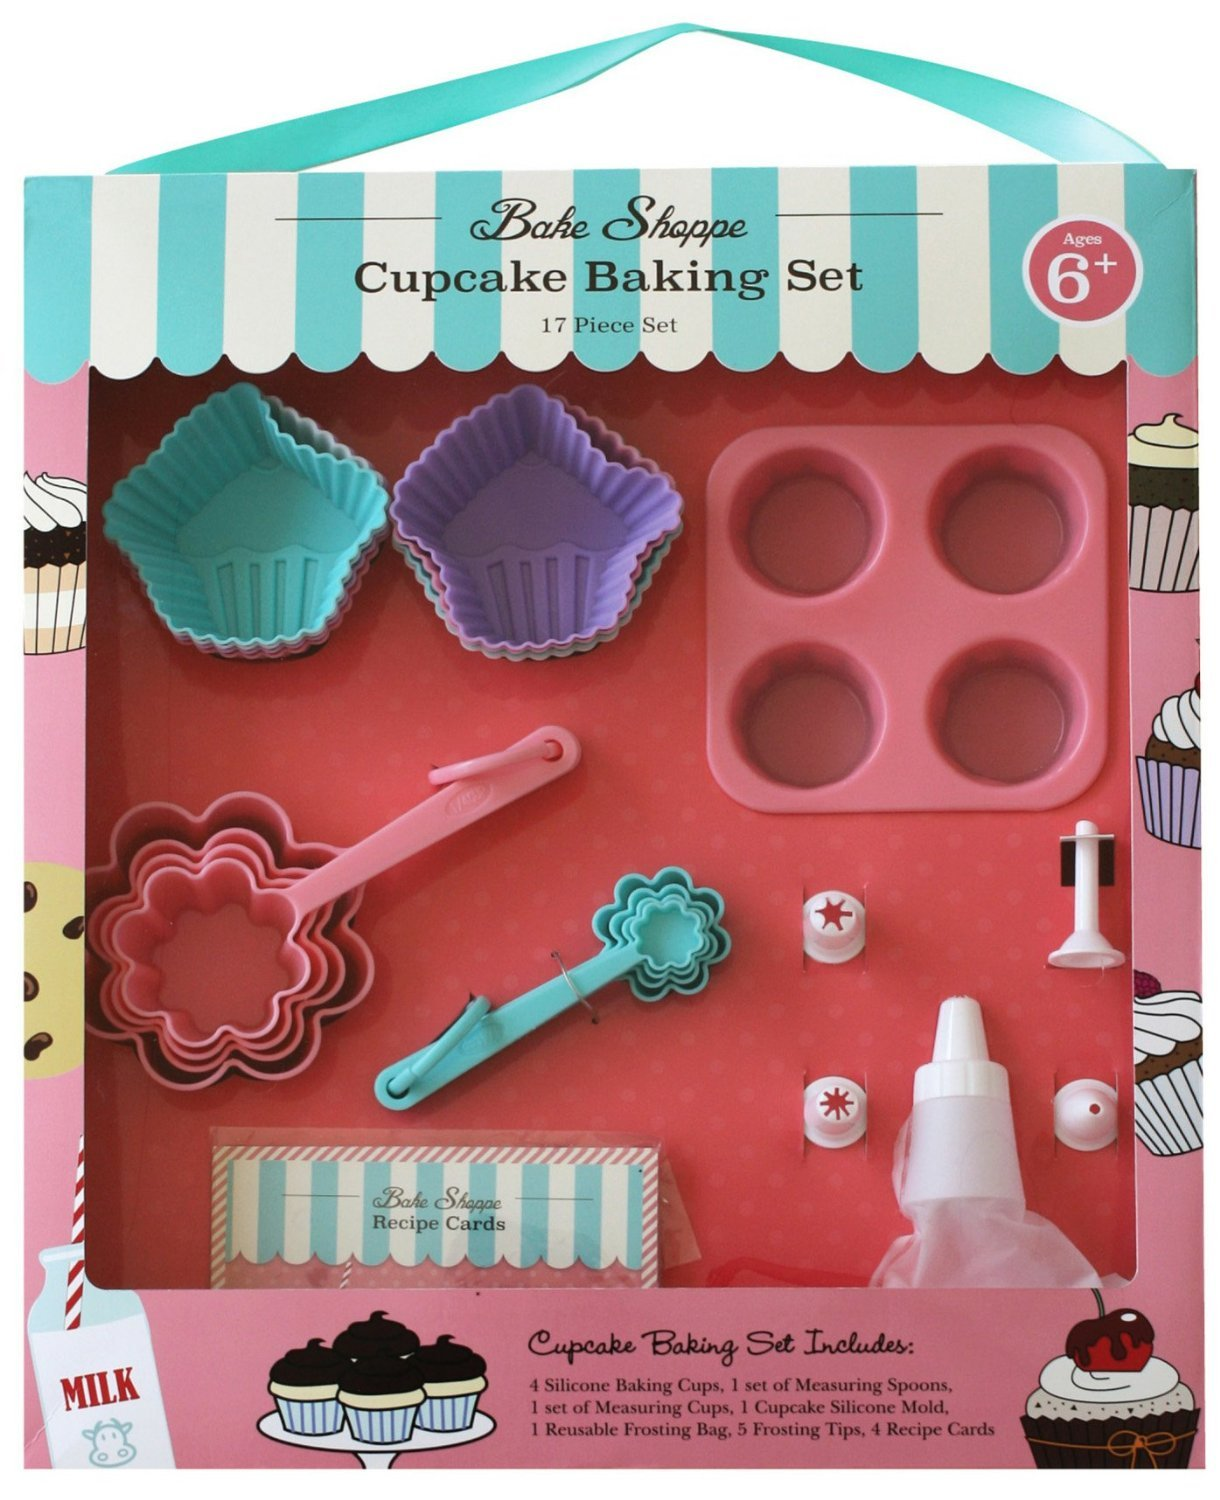 Handstand Kitchen Bake Shoppe 17-piece Real Cupcake Baking Set with Recipes for Kids